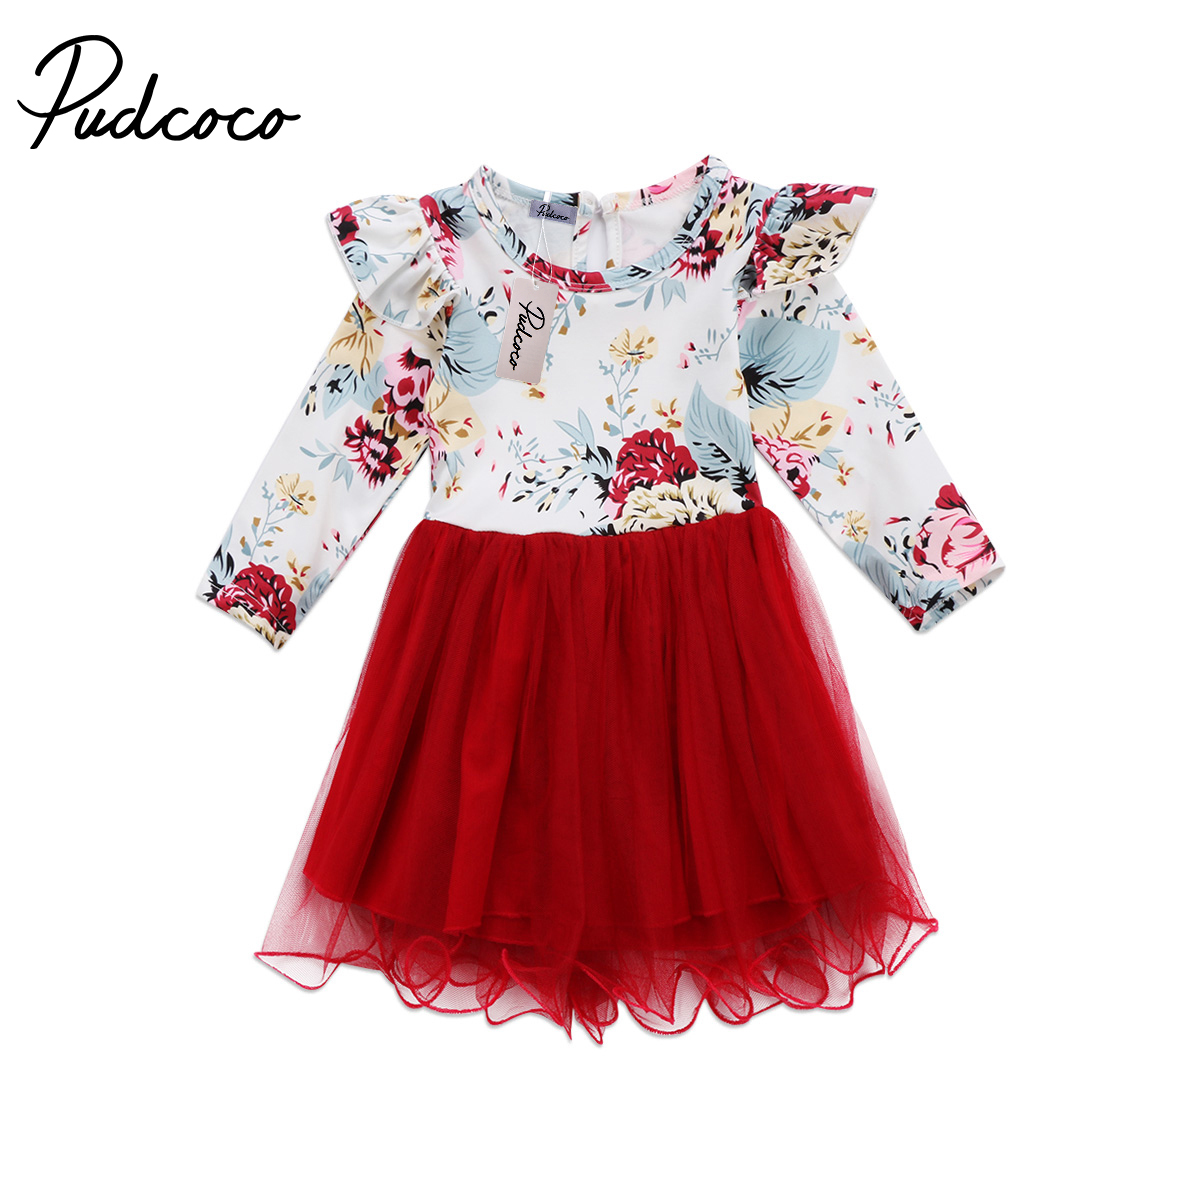 Xmas Ruffles Kid Baby Girl Floral Long Sleeve Tulle Tutu Dress Outfits Kids Flower Patchwork Red Dresses Girls Clothing baby girl 1st birthday outfits short sleeve infant clothing sets lace romper dress headband shoe toddler tutu set baby s clothes